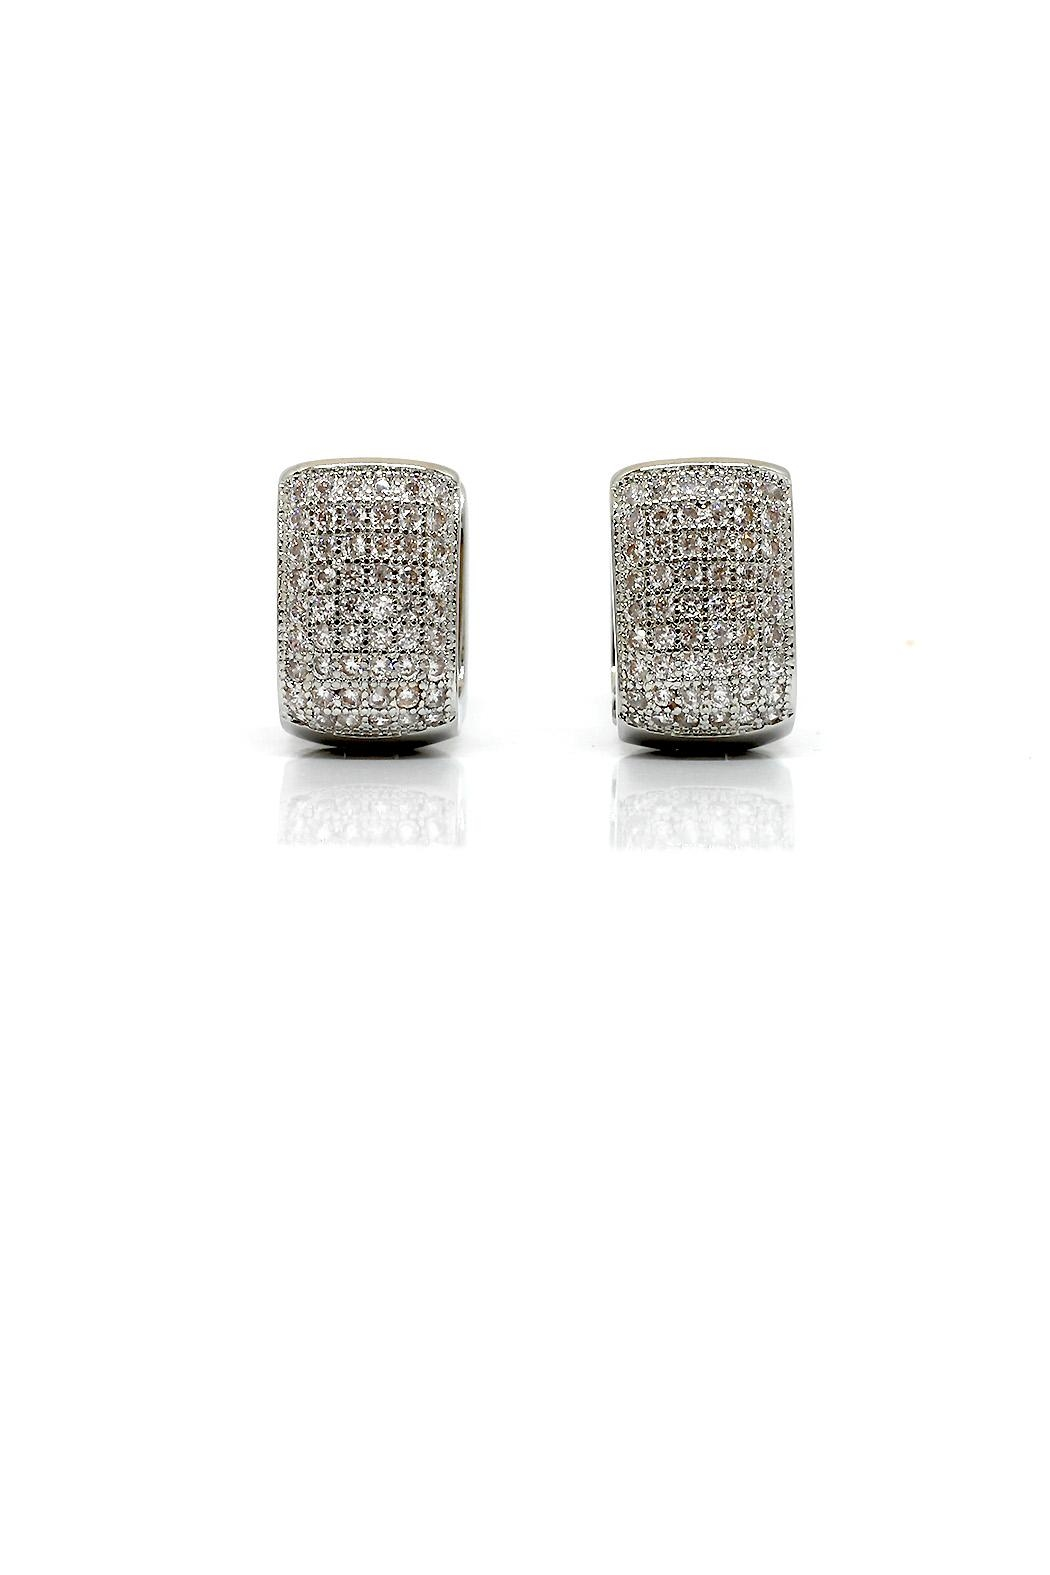 TINK TINK Square Huggie Earrings - Main Image